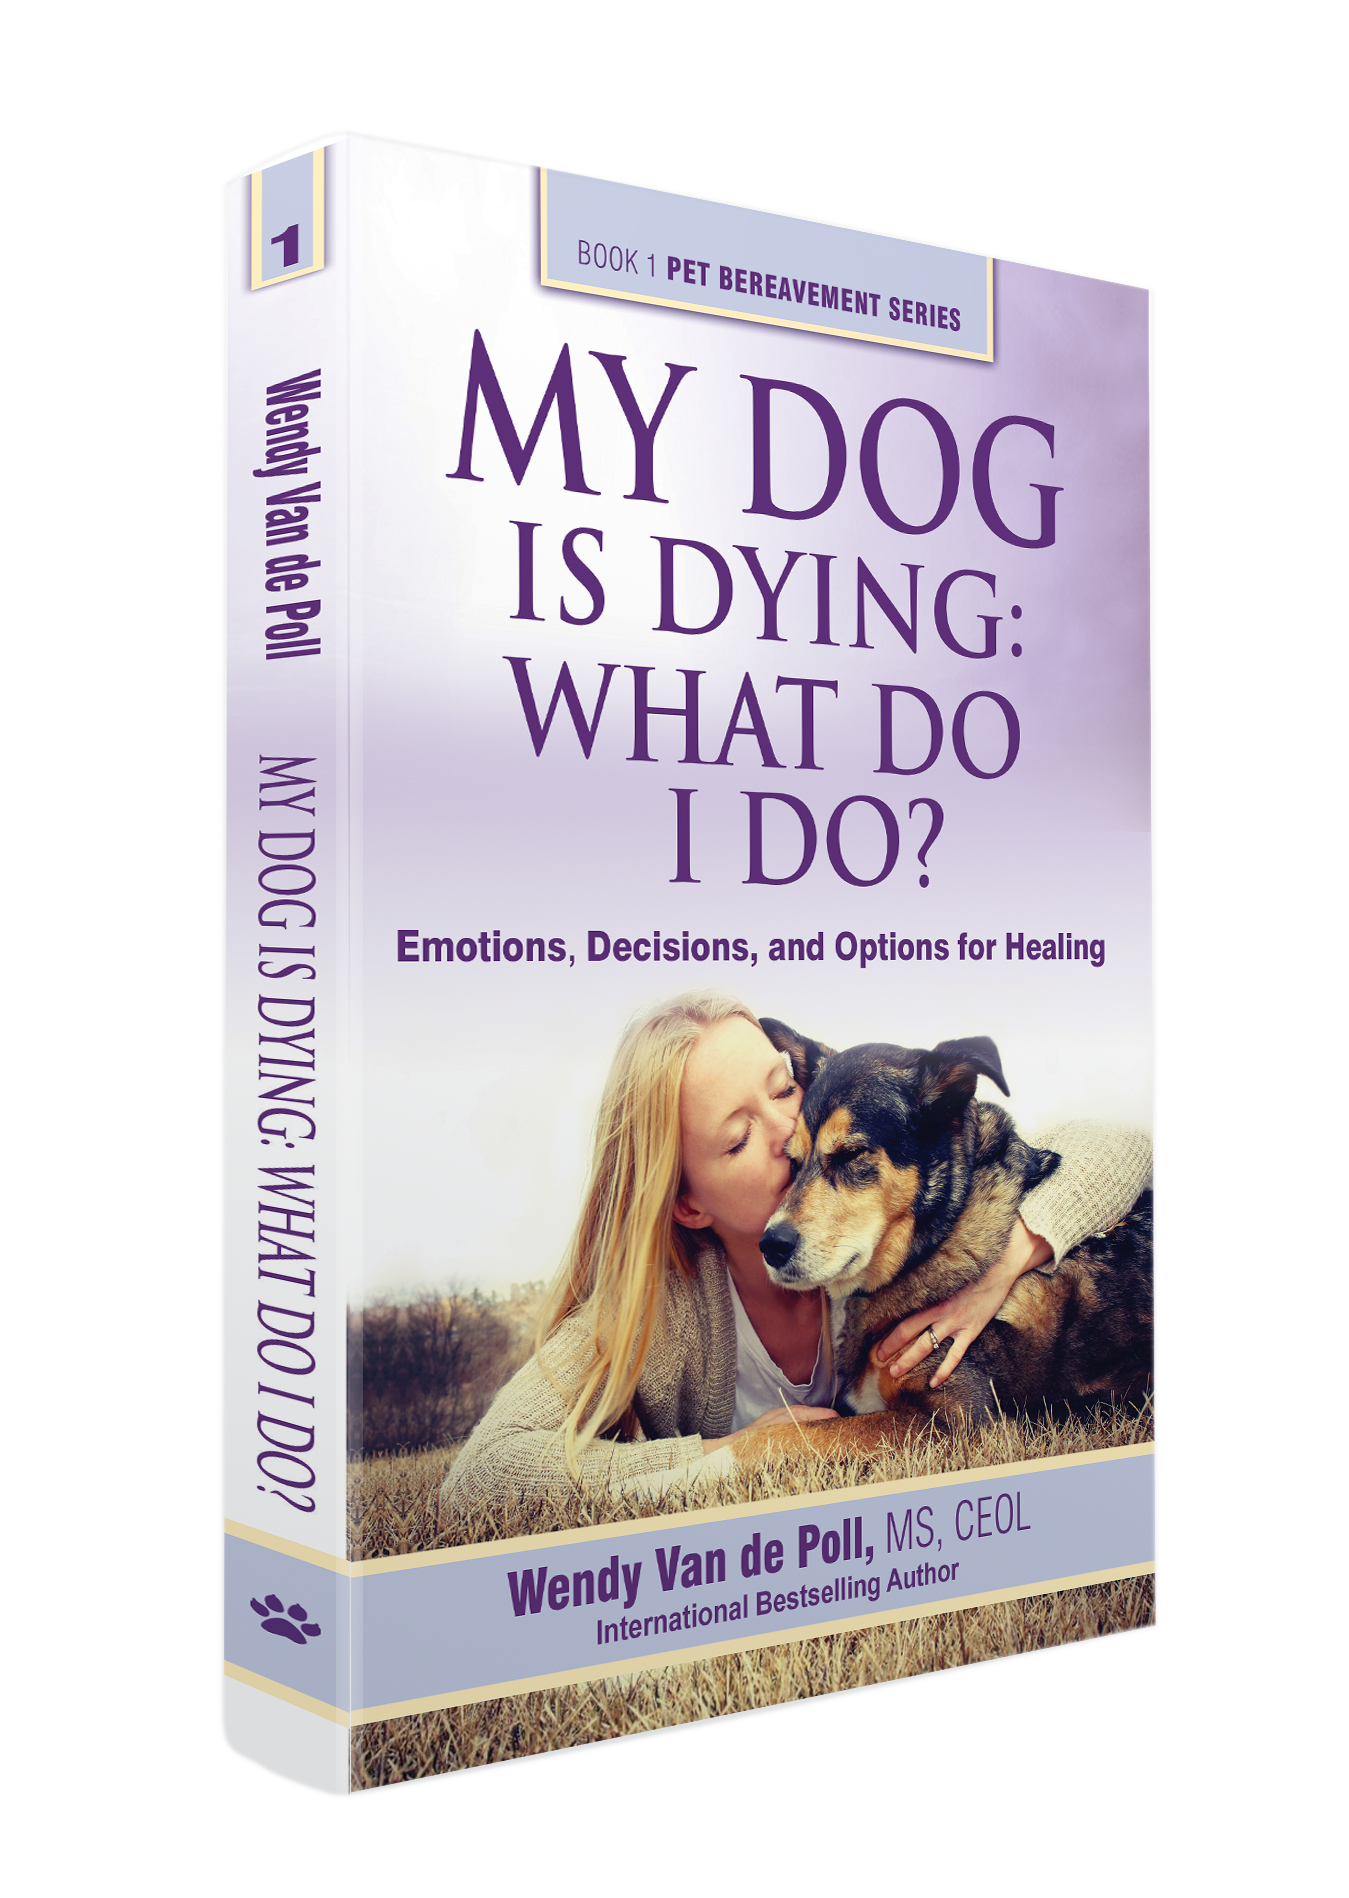 My Dog Is Dying: What Do I Do?